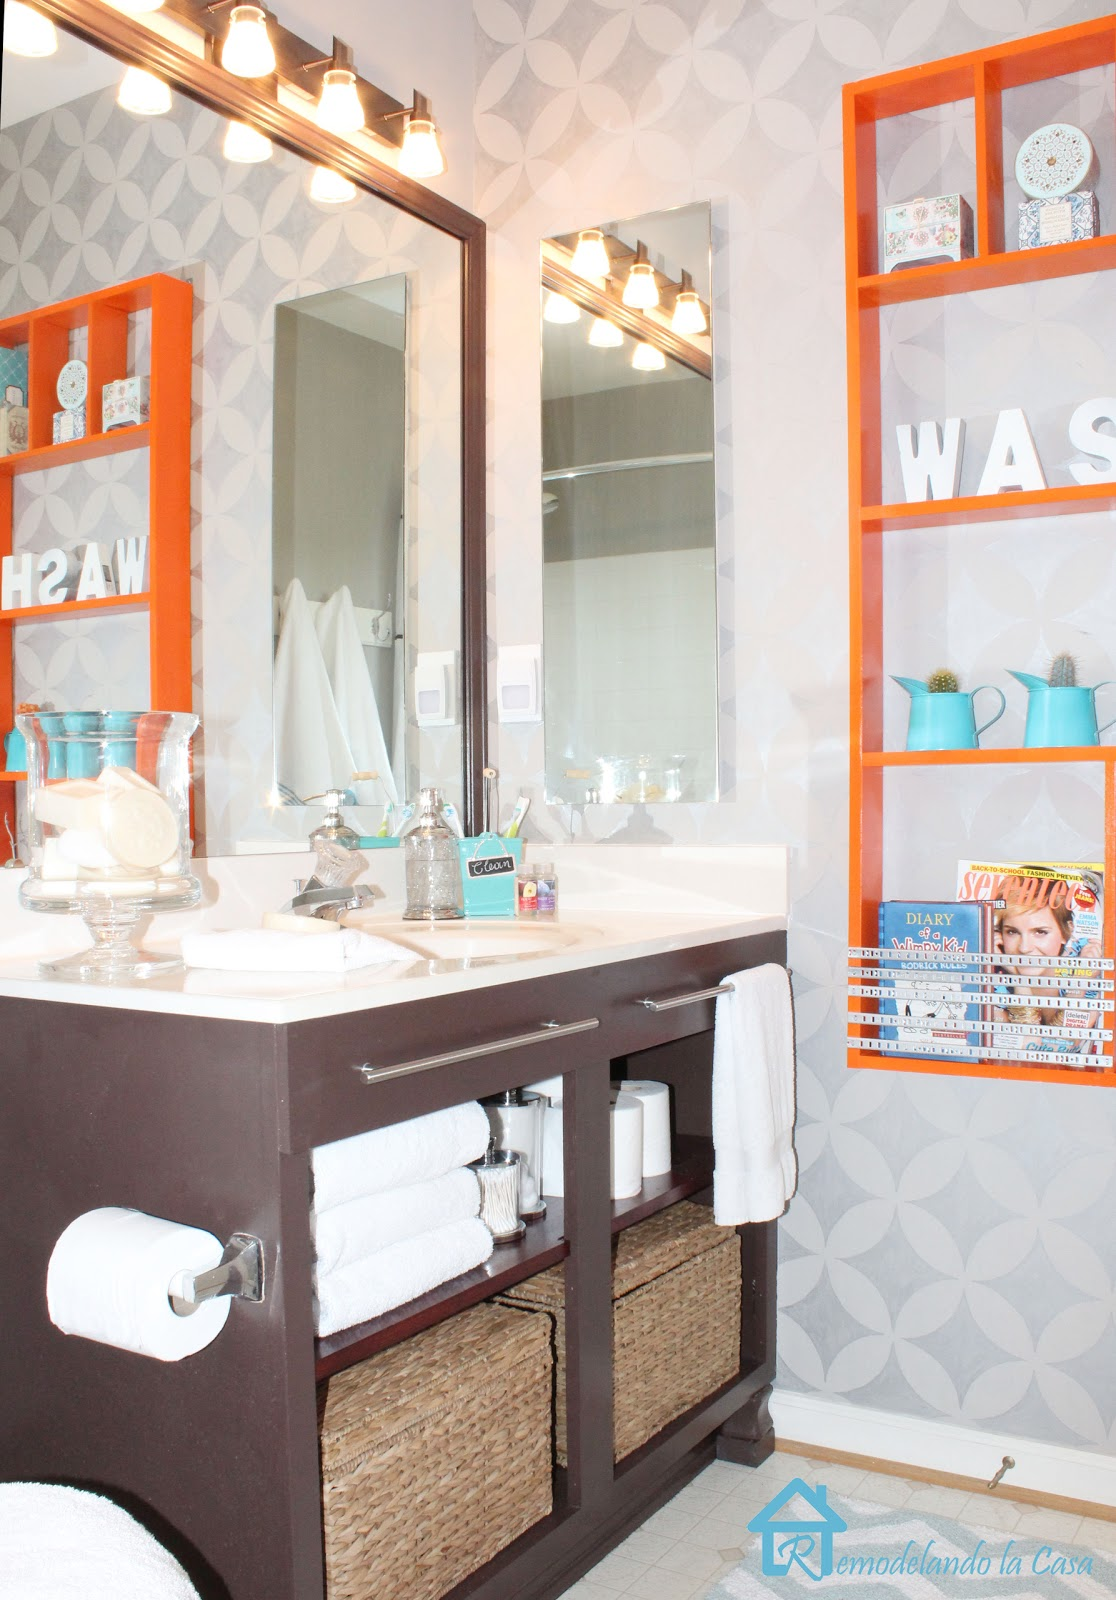 Teal and brown bathroom 28 images bathroom teal and for Blue and orange bathroom